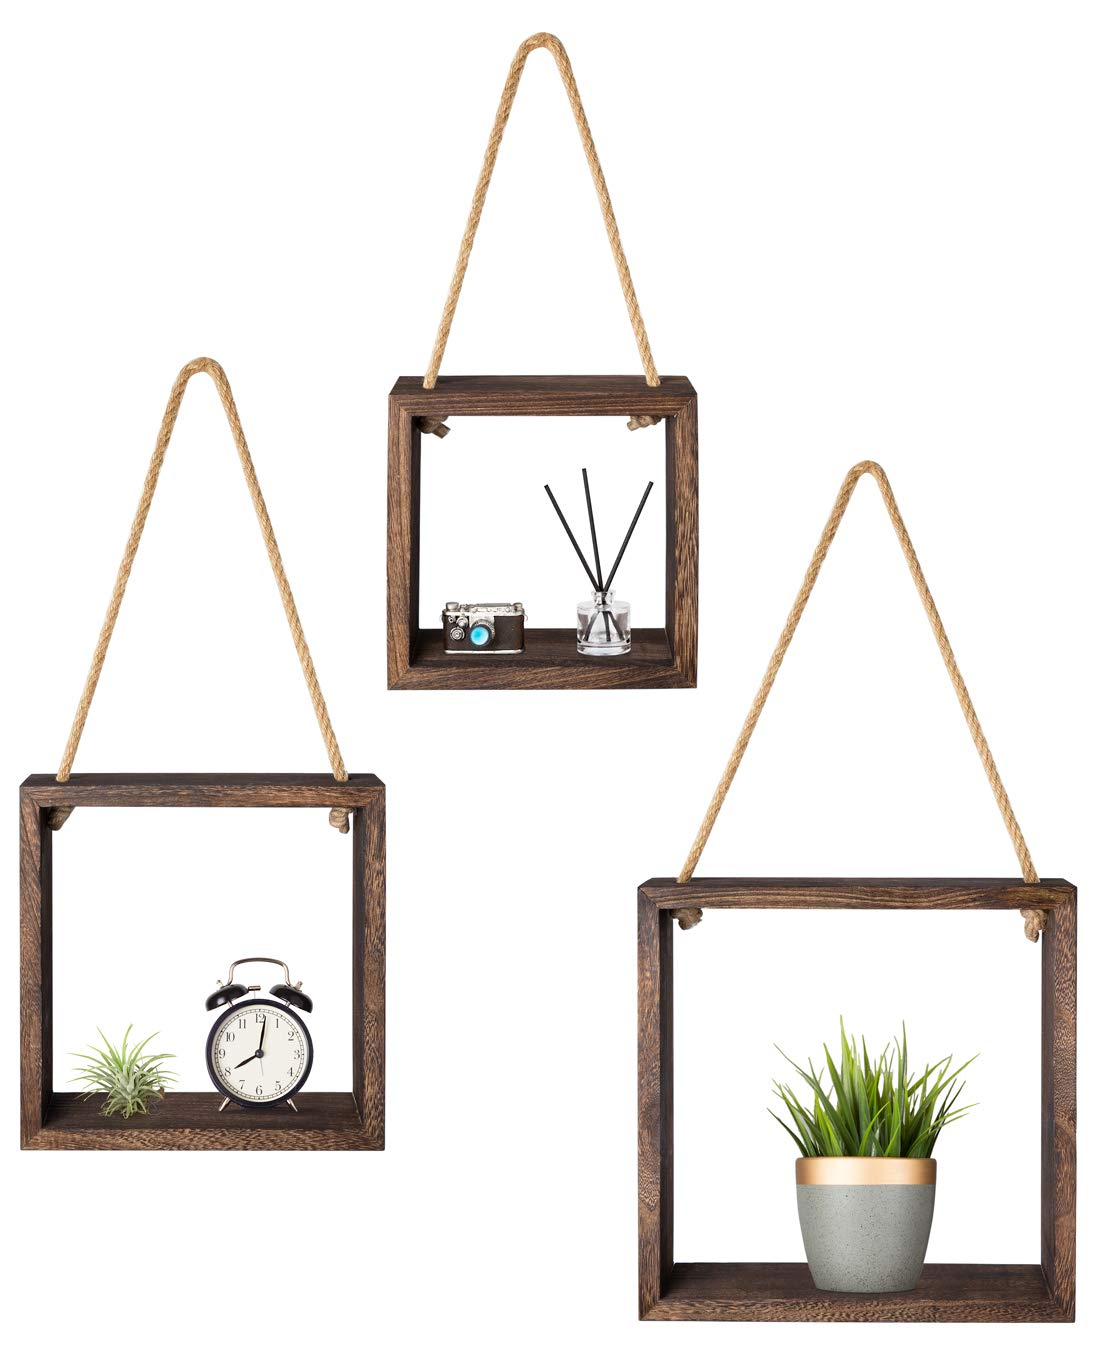 Mkono Hanging Square Floating Shelves Wall Mounted Cube Display Shelf Rustic Shadow Boxes Decorative Storage Organizer for Home Office Coffee Shop, Set of 3, Brown by Mkono